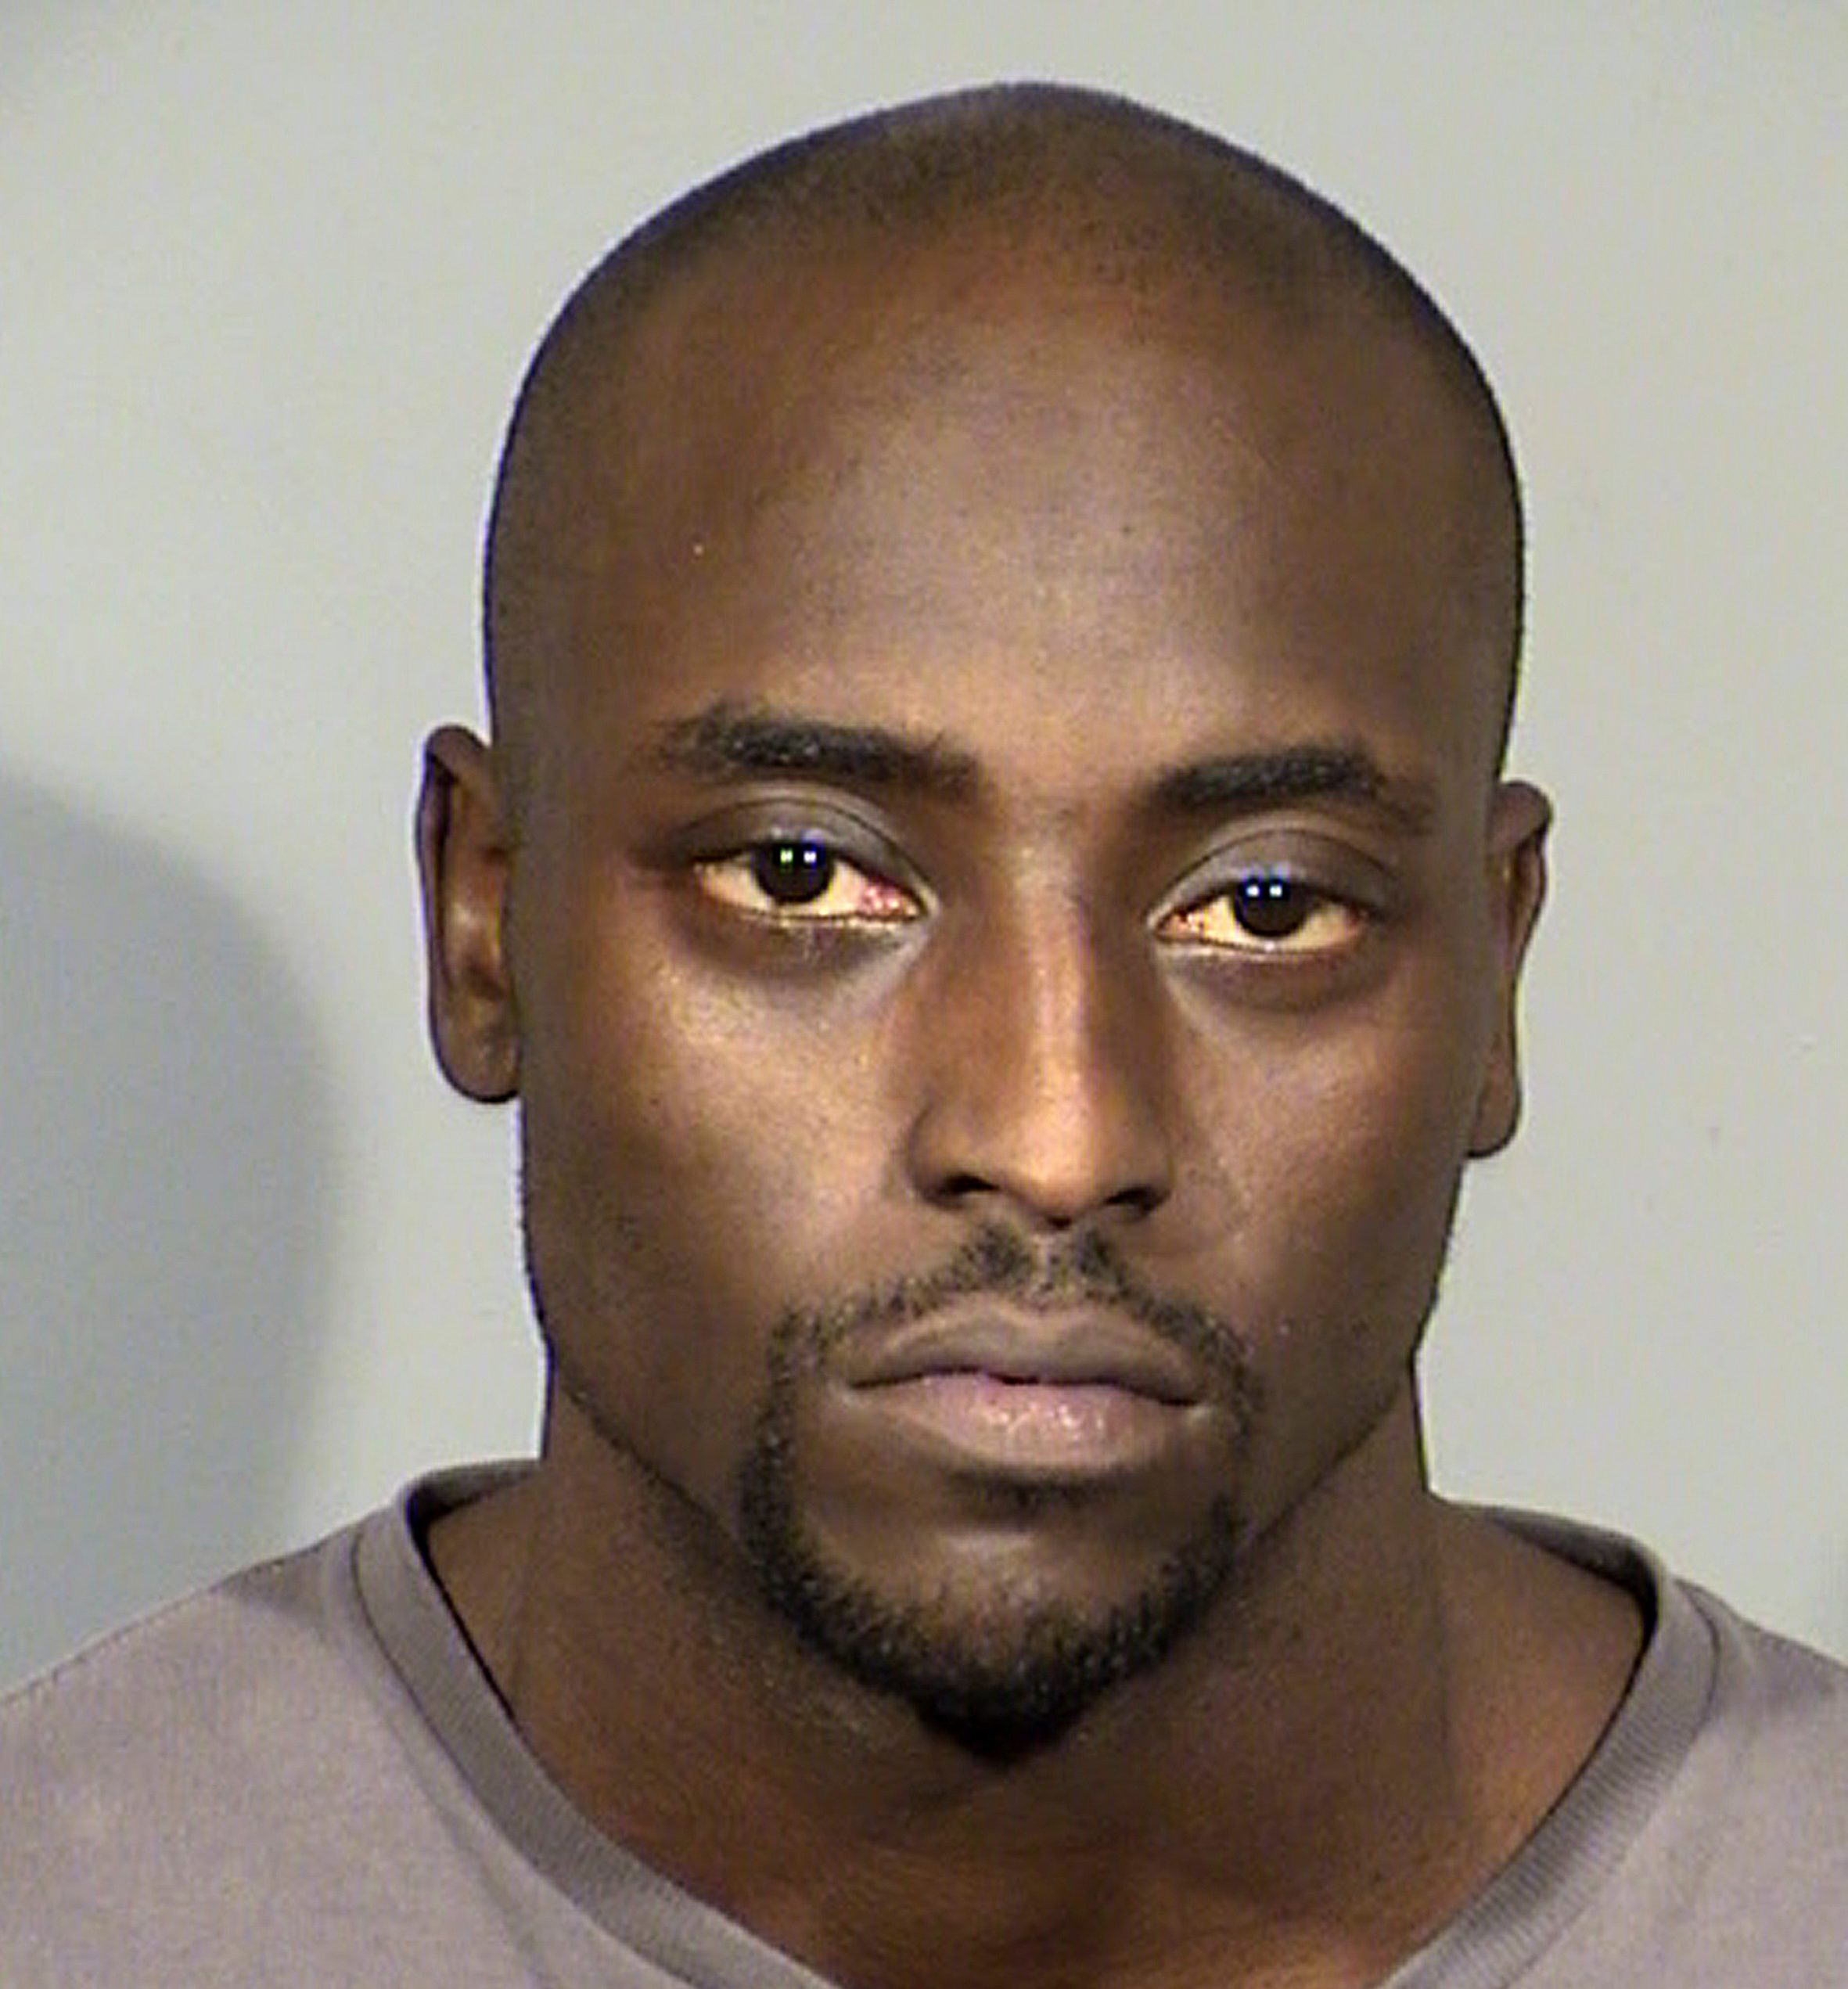 Former NFL star Cierre Wood has been charged with the murder of his girlfriend's five-year-old daughter